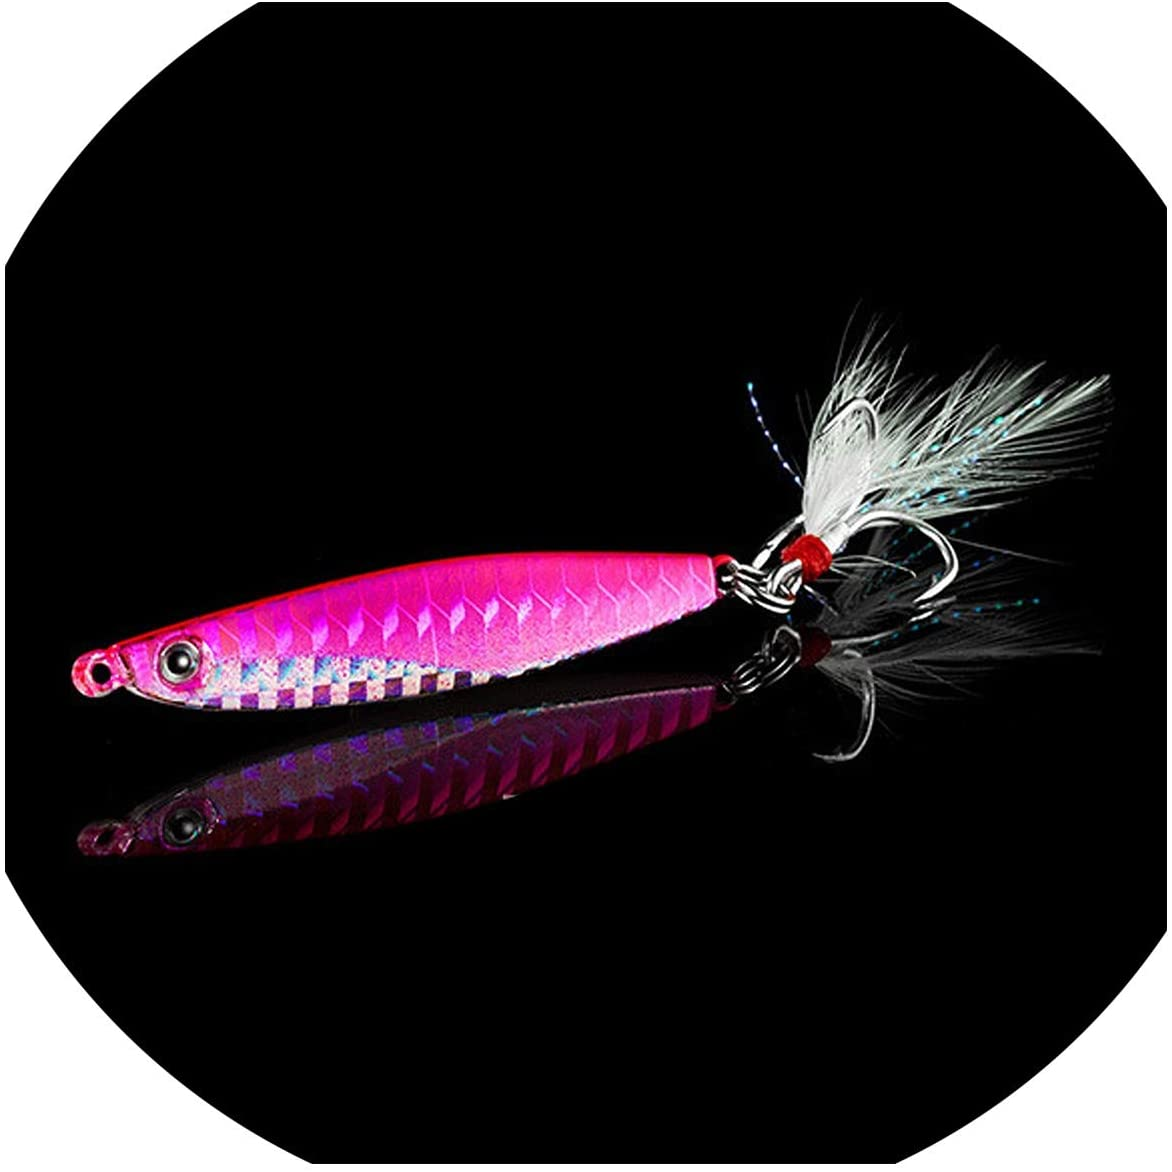 OH WHY Fishing Lure Spinners Spoon Bait Jig Silicone Bait Wobbler Squid Octopus Winter Sea Ice Fishing Minnow7 14 18 30g,J,6cm 14g